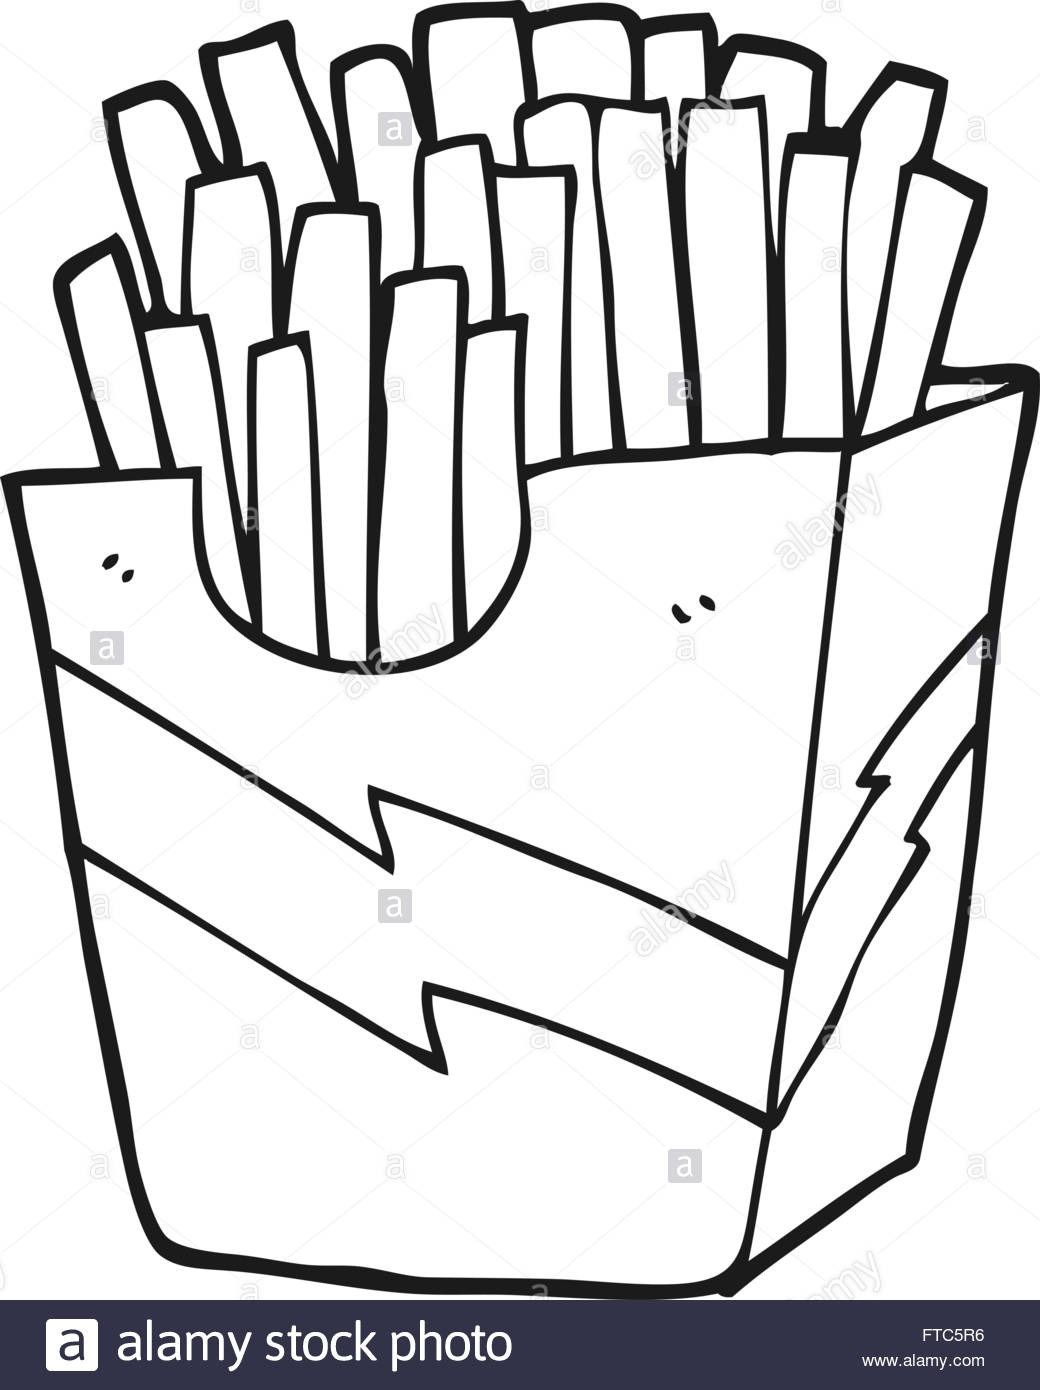 Hamburger Coloring Page Coloring Pages Coloring Sheets Stunning